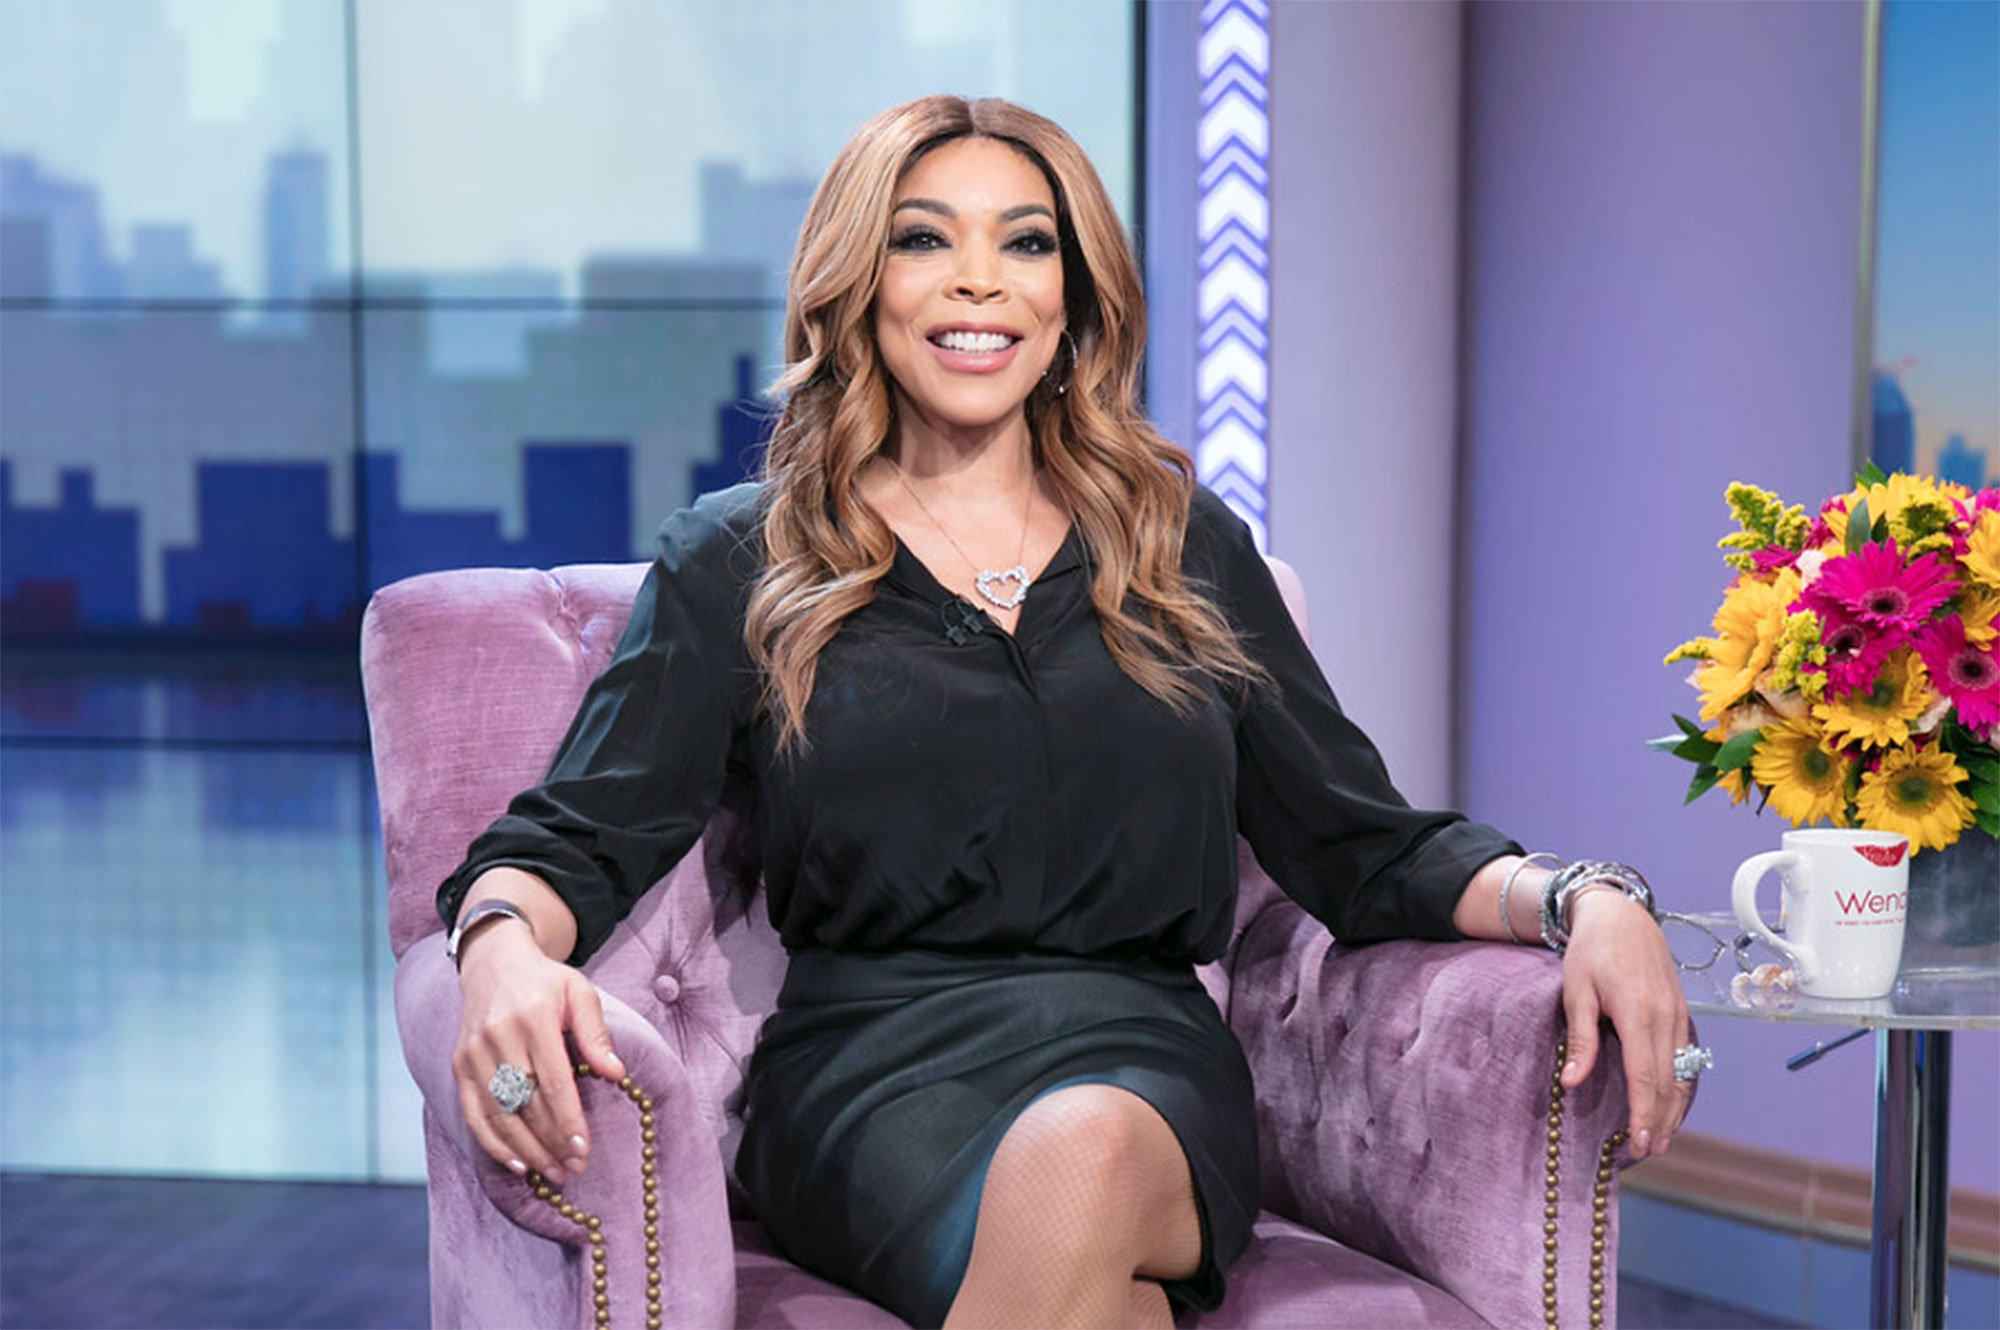 Wendy Williams Launches Substance Abuse Hotline a Week After Returning to Show